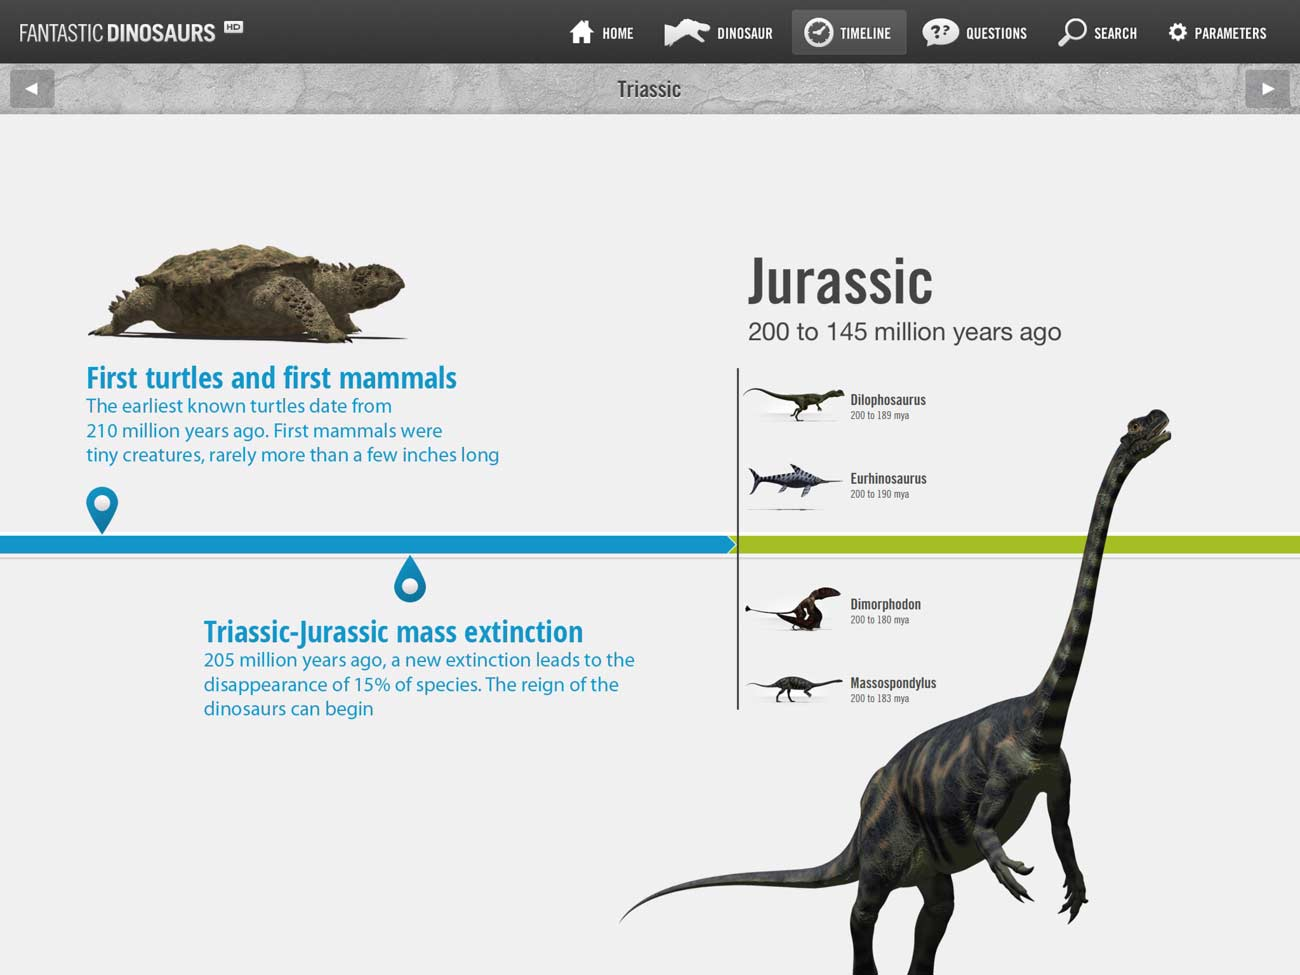 The app's timeline is an easy way to browse the dinosaurs while getting a sense of the timescales involved. It's also filled with fascinating facts.